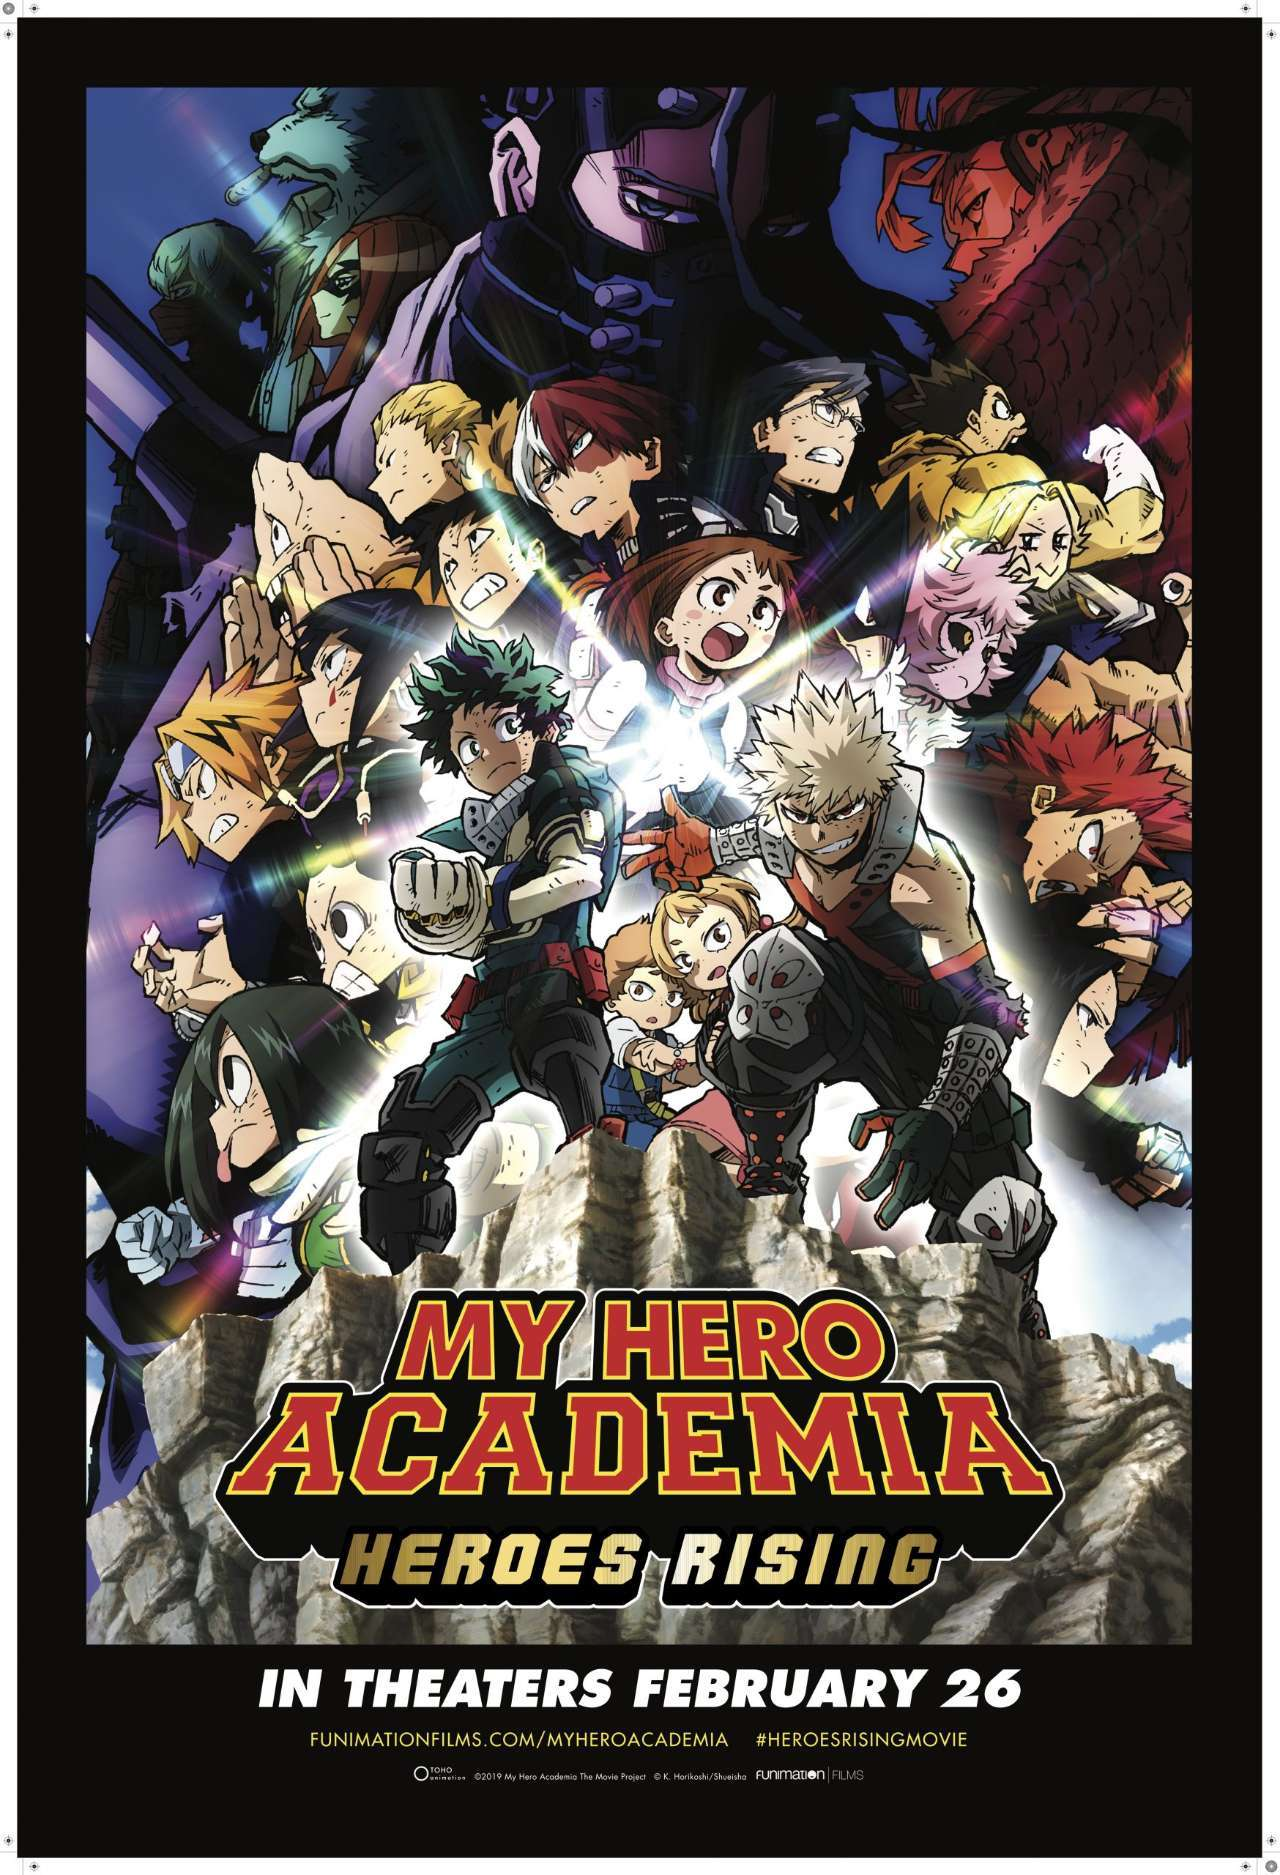 My Hero Academia Heroes Rising Reveals New Poster